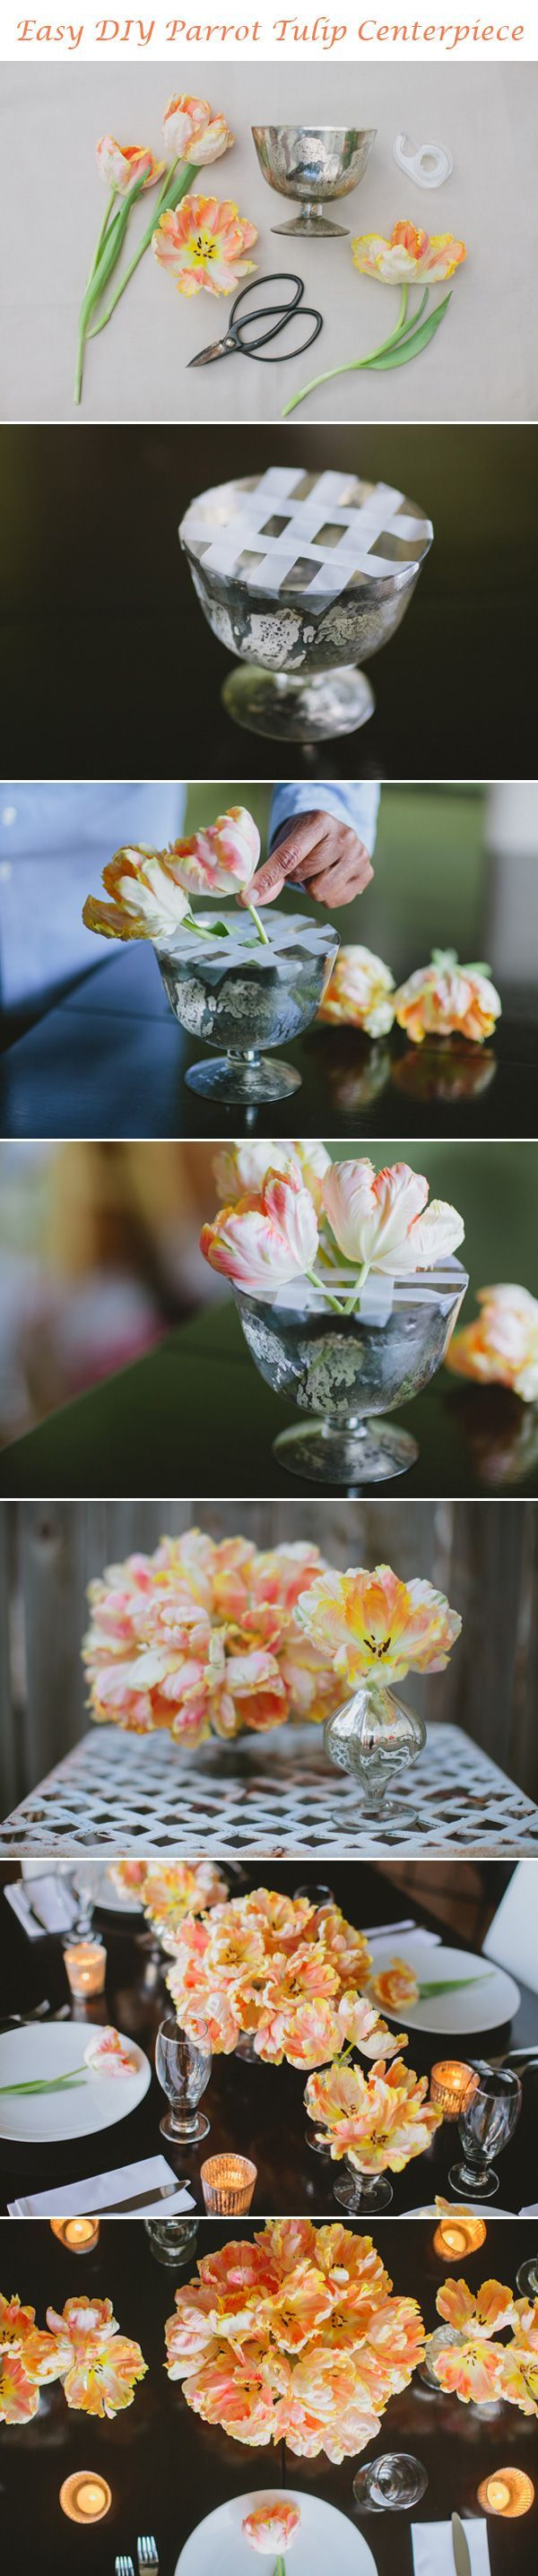 Parrot Tulip DIY Centerpiece - Flowers by: FiftyFlowers.com - Styled by: Jamie Medley at The Brides Cafe - Photos by: Tori of Marvelous Things Photography